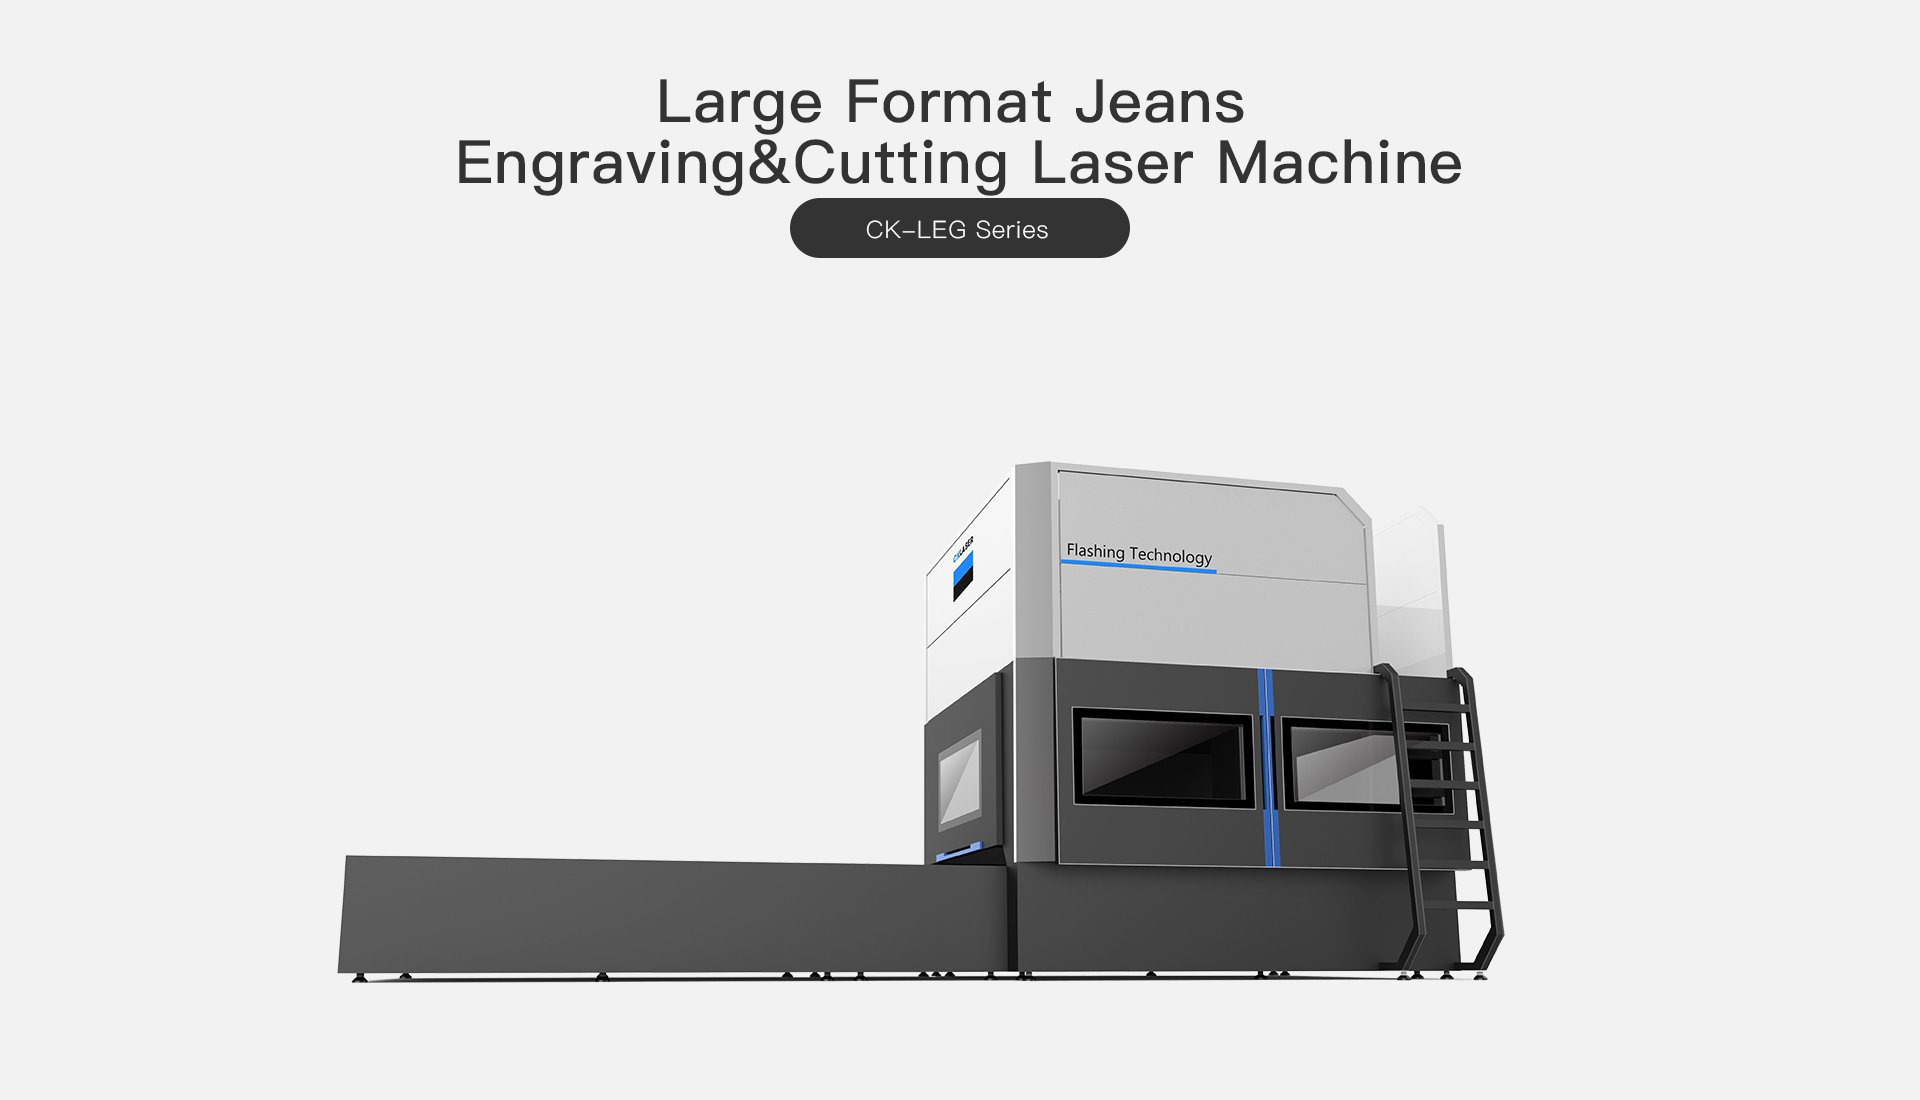 Taste Laser-denim laser machine